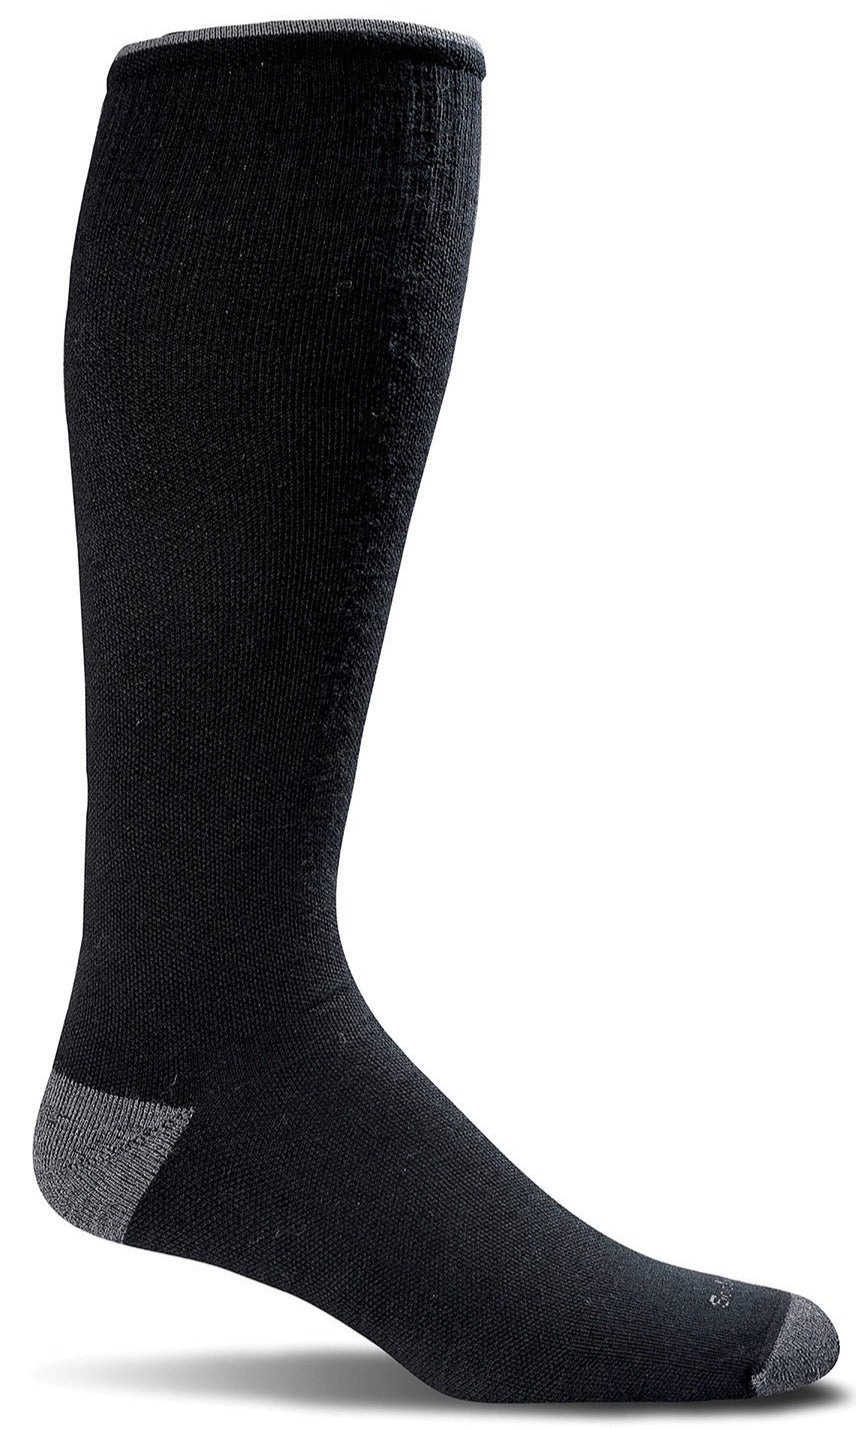 Elevation Knee-High - Black Firm Compression (20-30mmHG)